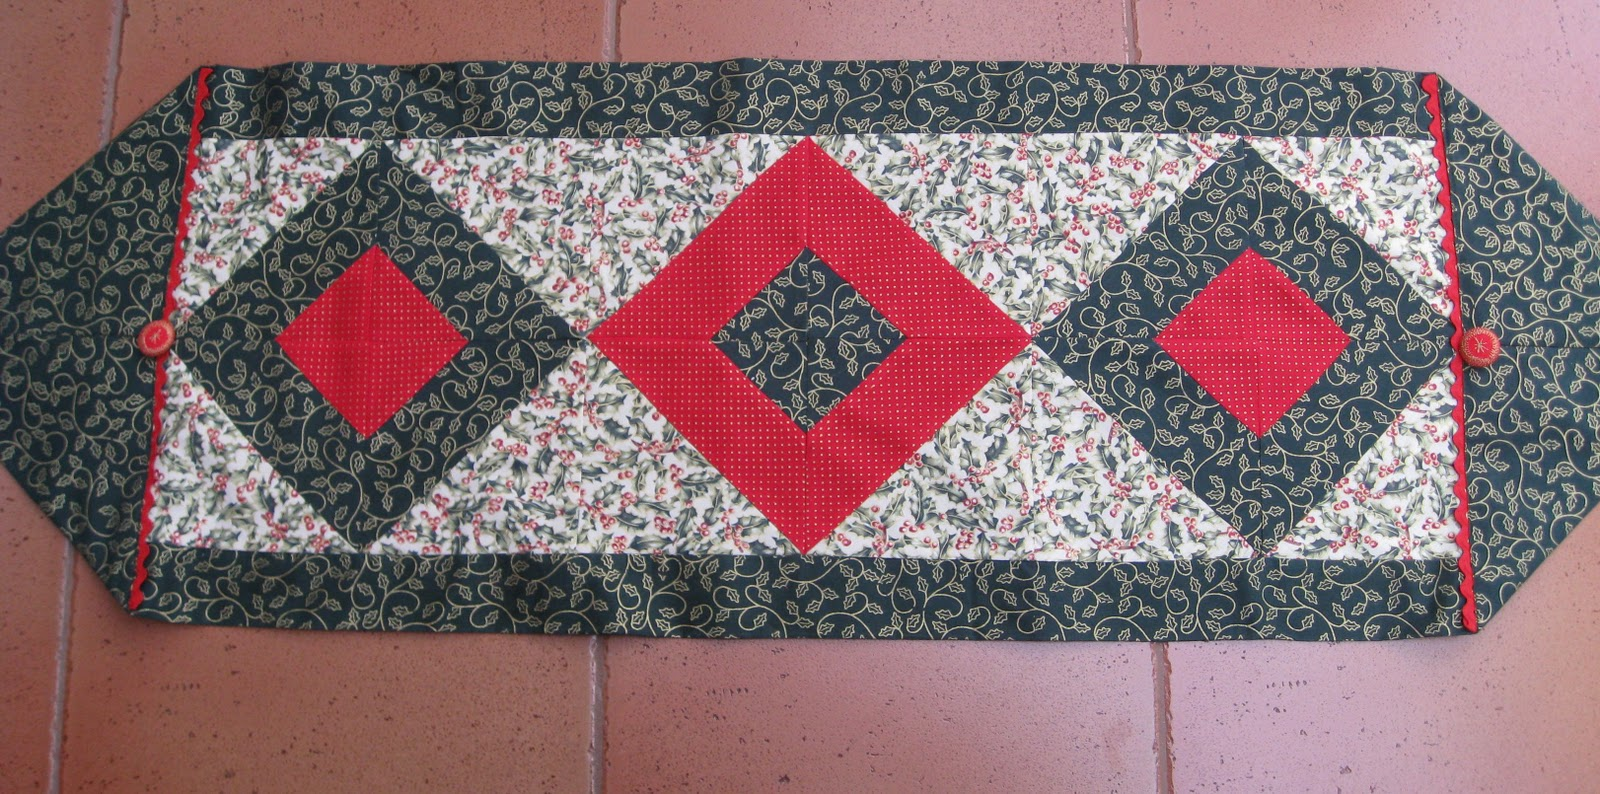 Vicki 39 s fabric creations tutorial pages for 10 minute table runner pattern